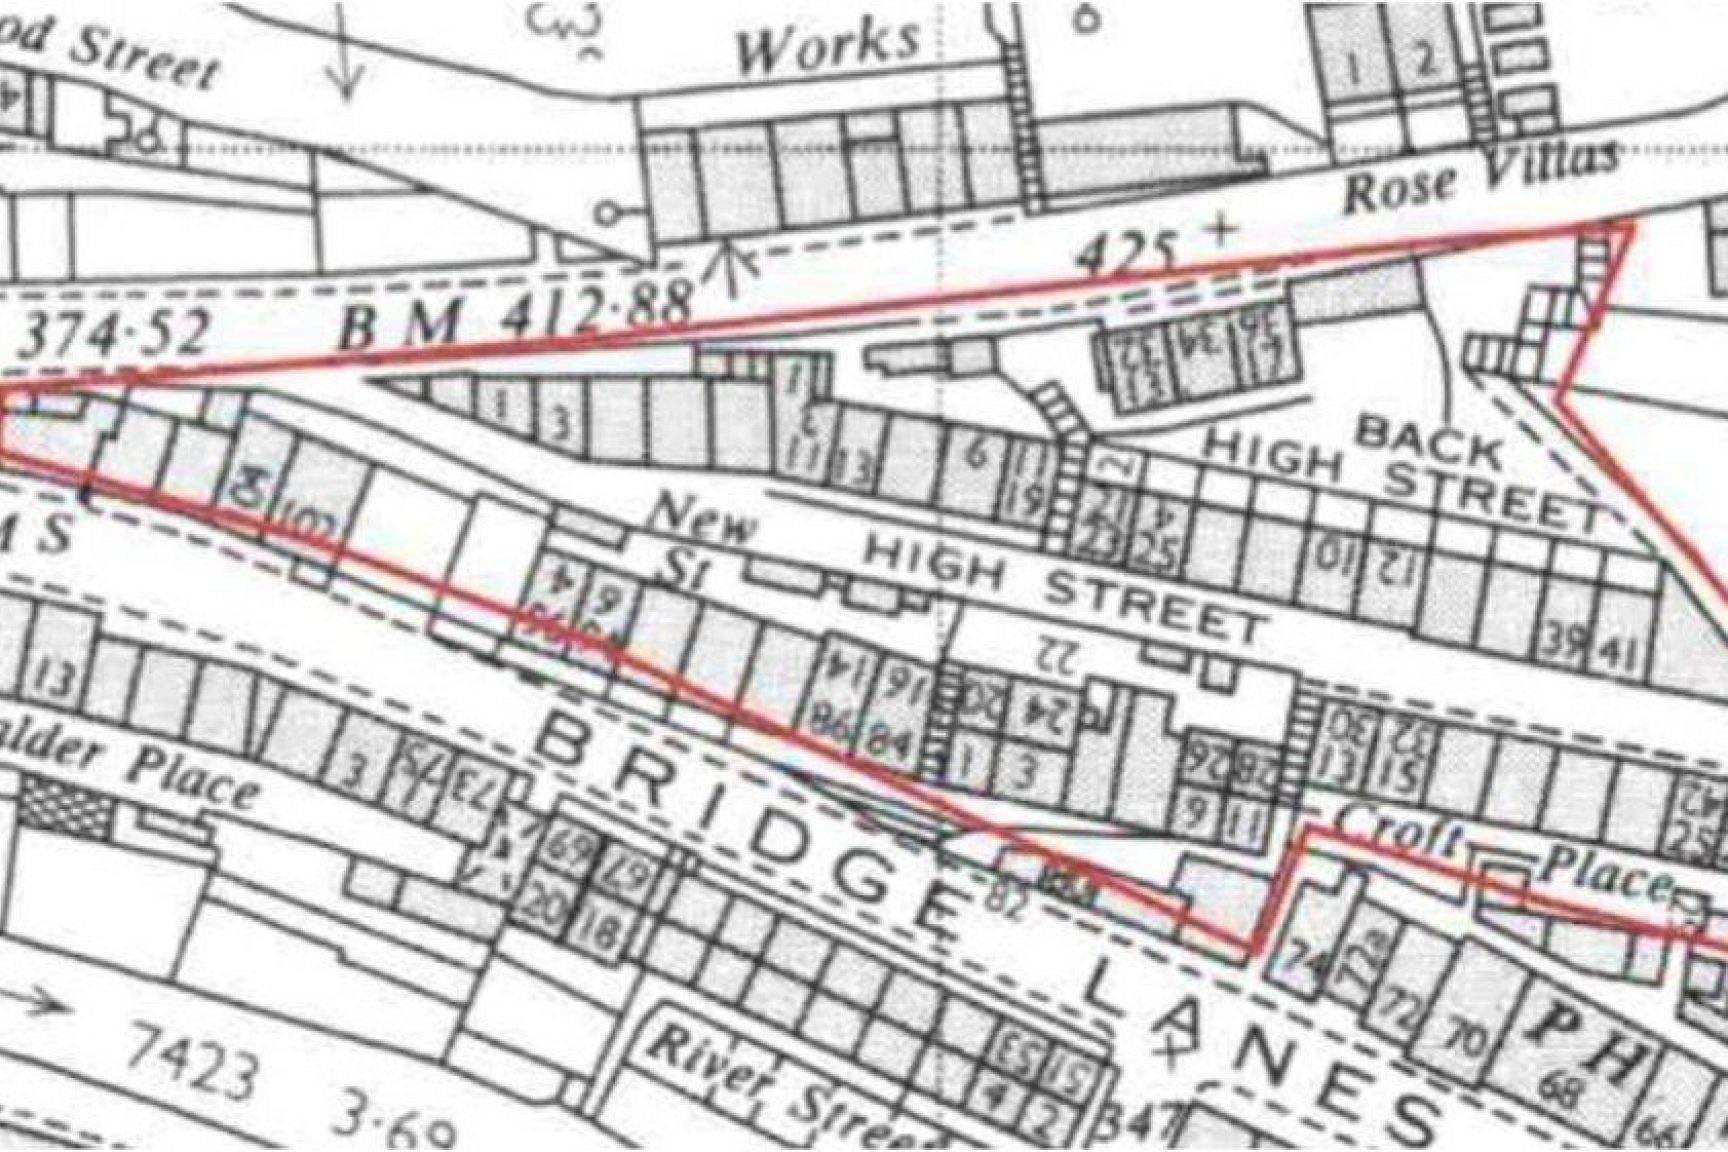 This is a Map of the Hebden Bridge area to be used for neighborhood planning or housing